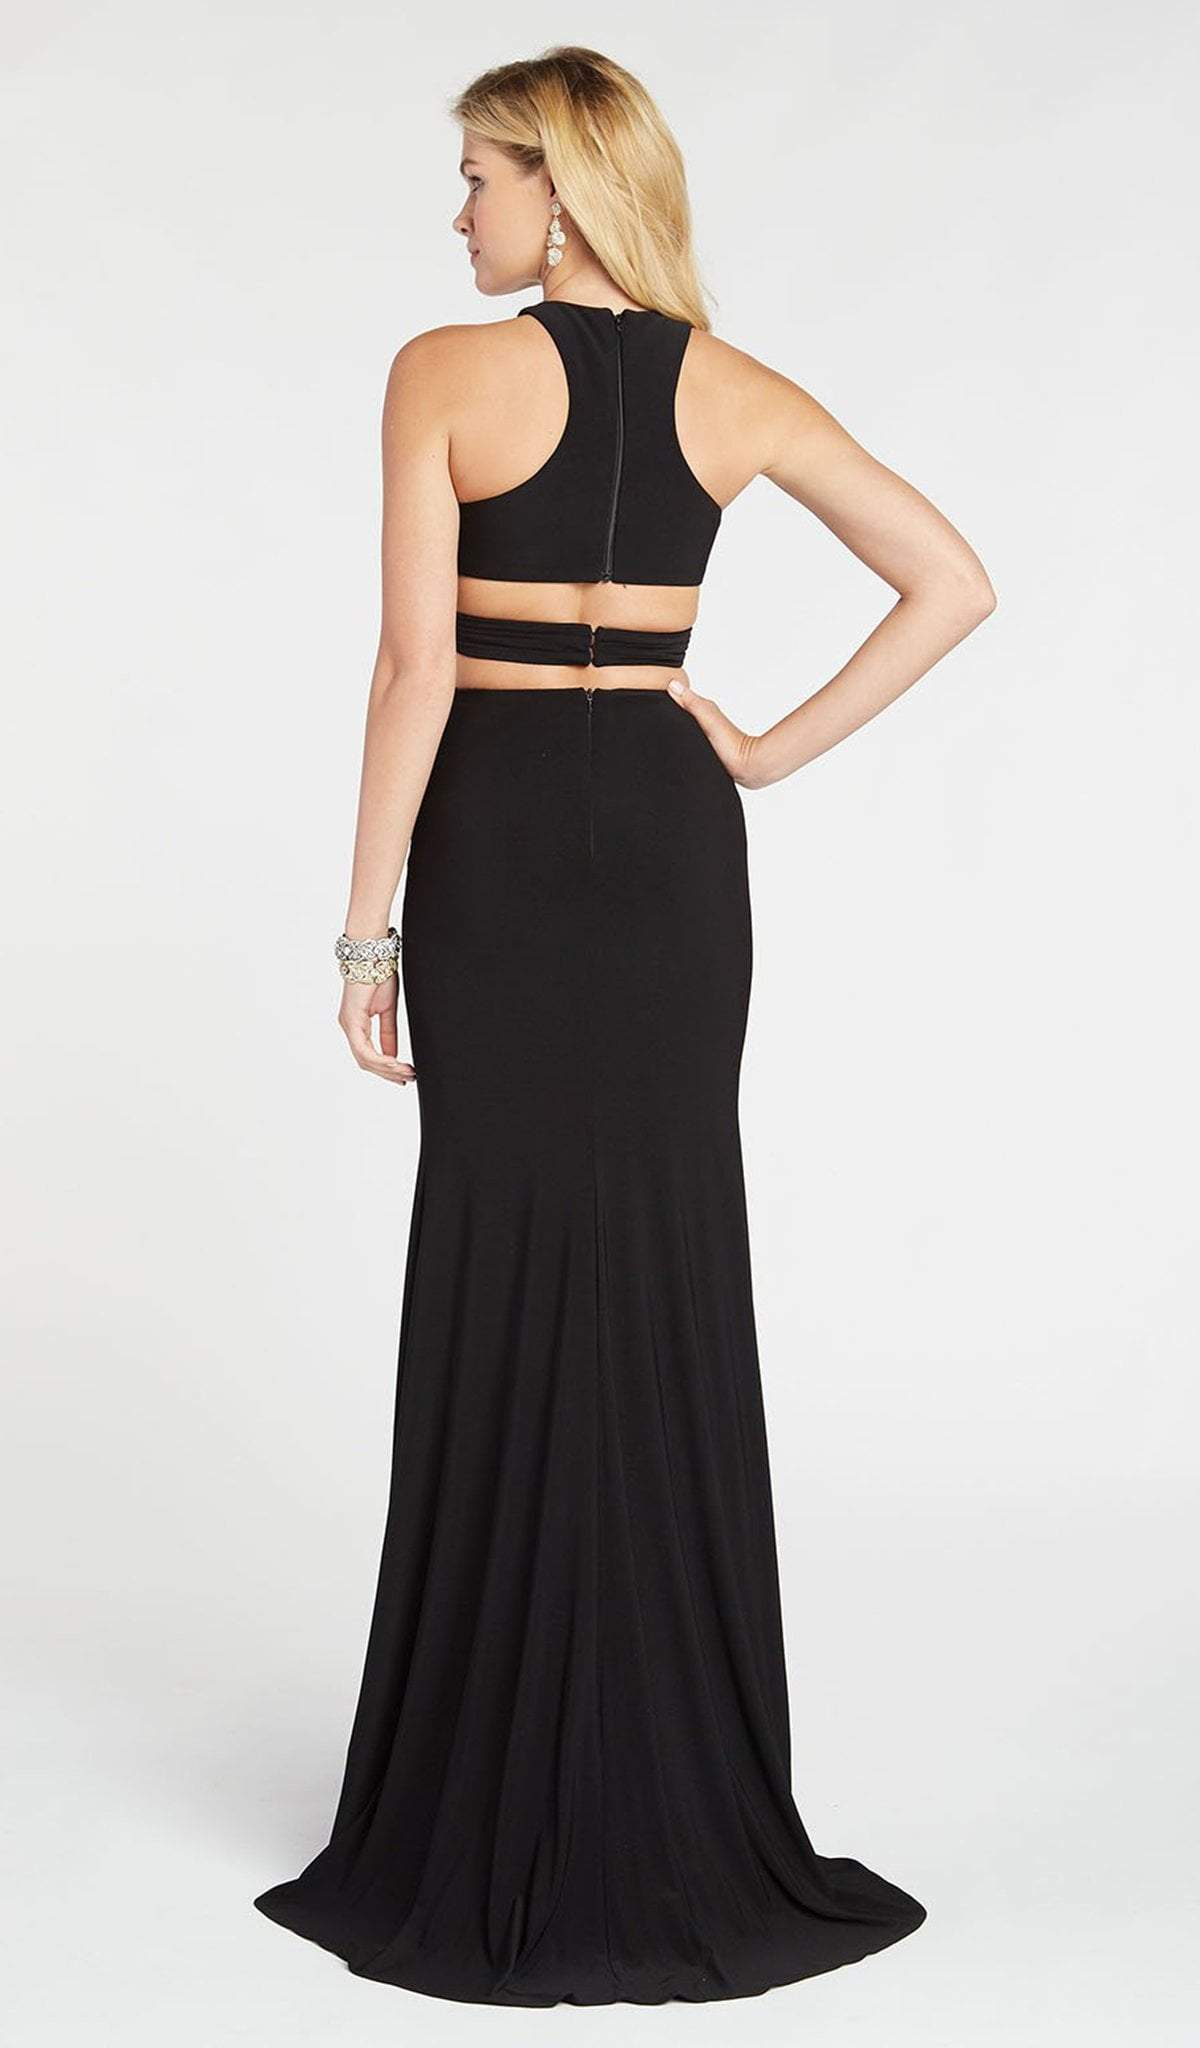 Alyce Paris - 60284 Two Piece Halter Top Sheath Evening Dress with Slit In Black